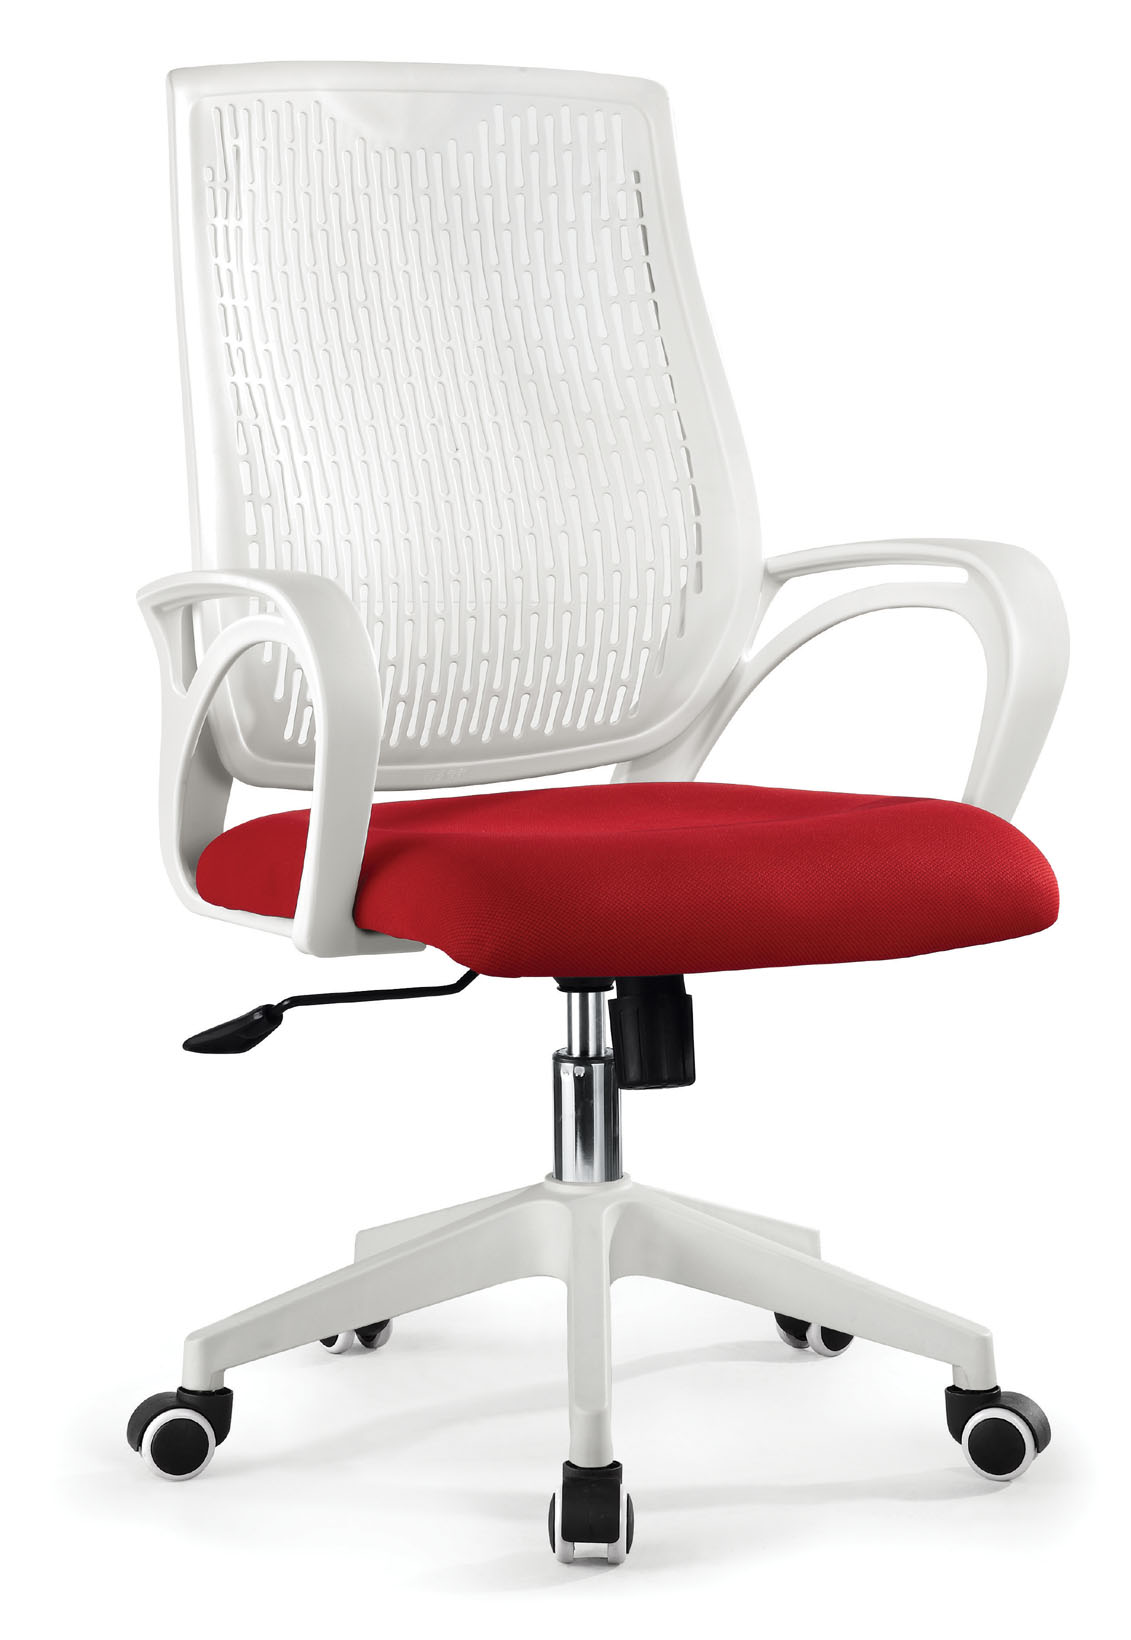 ZHSMC-03 Swivel Office Chair with White Armrest Mesh Backrest